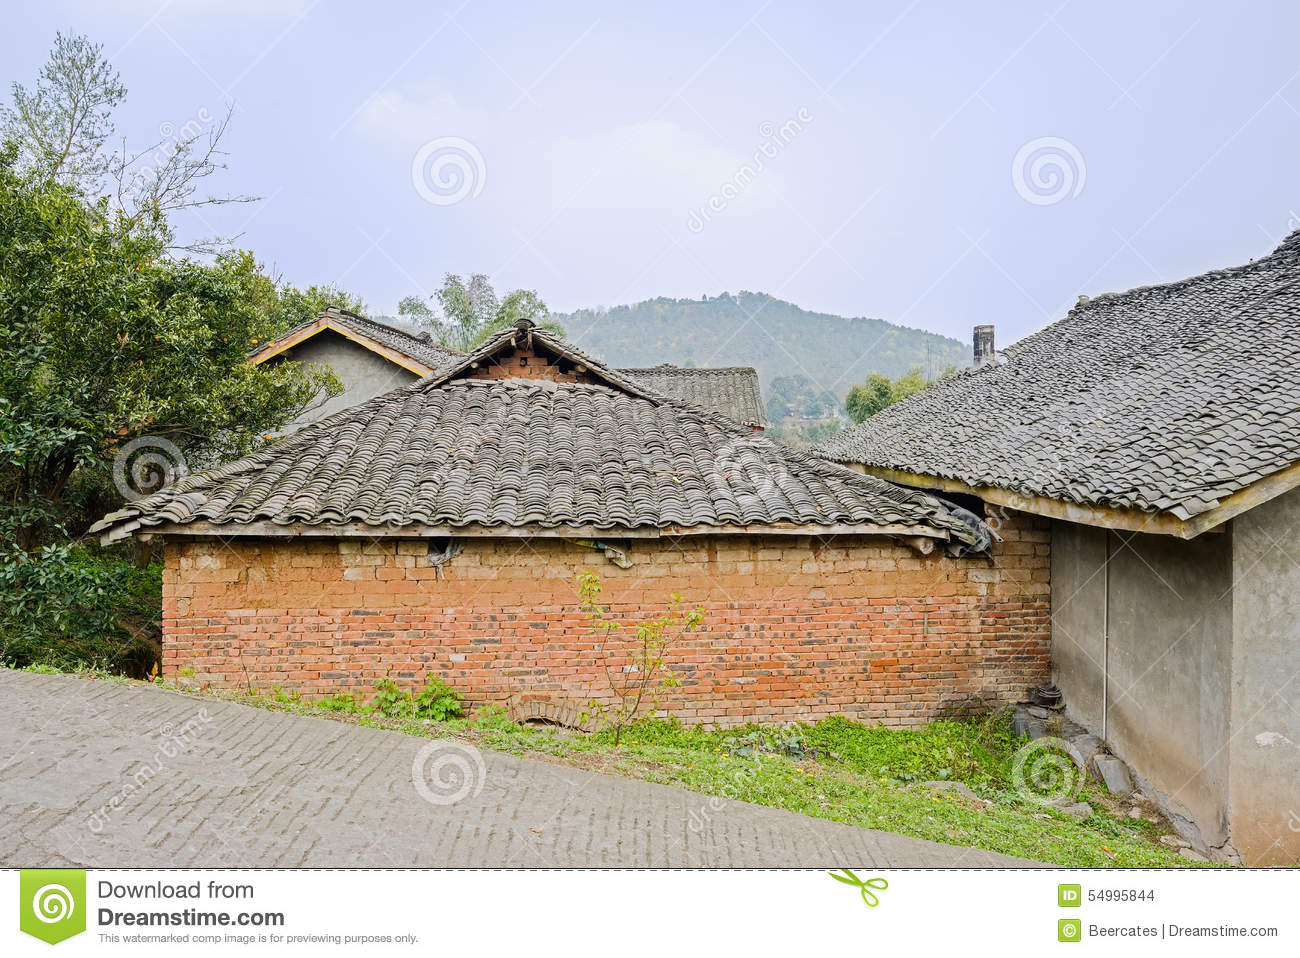 Aged Chinese farmhouses by slopy countryroad in sunny spring